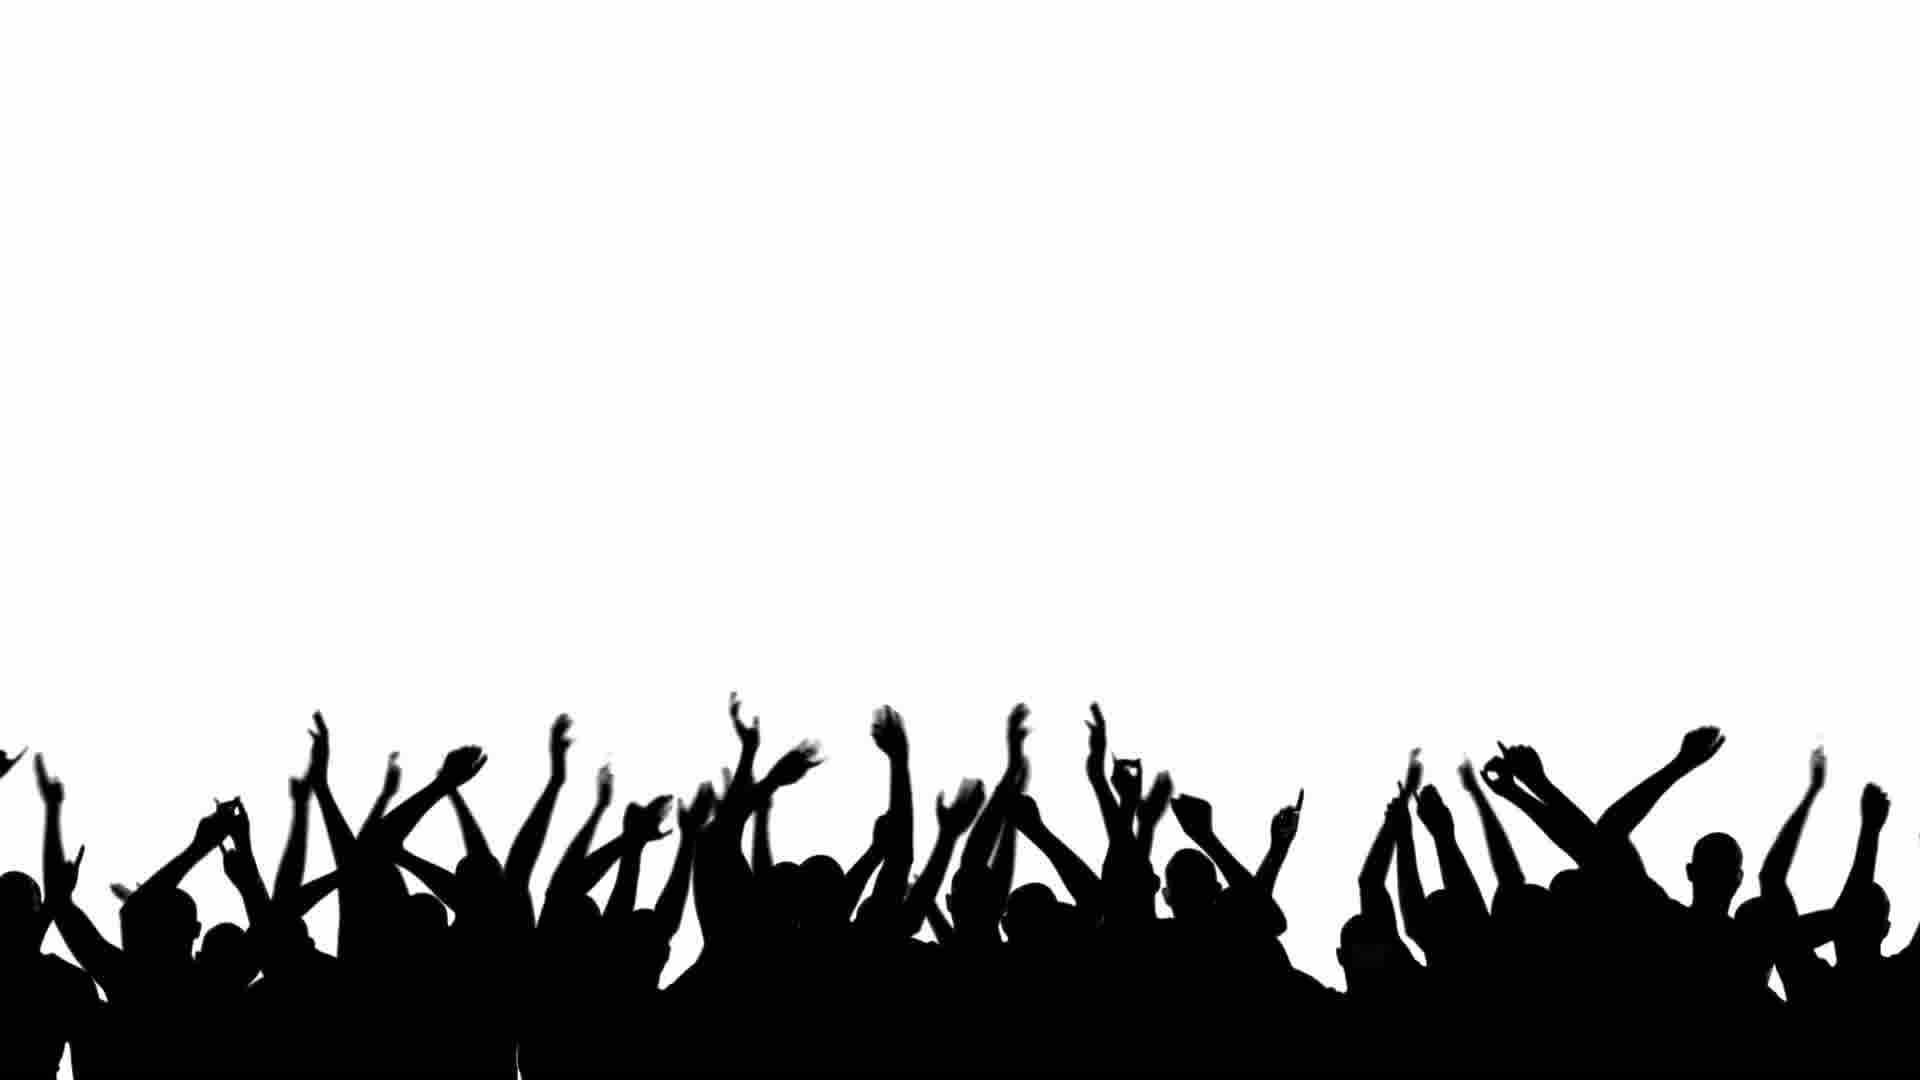 Party Crowd Silhouette: Royalty-free Video And Stock Footage